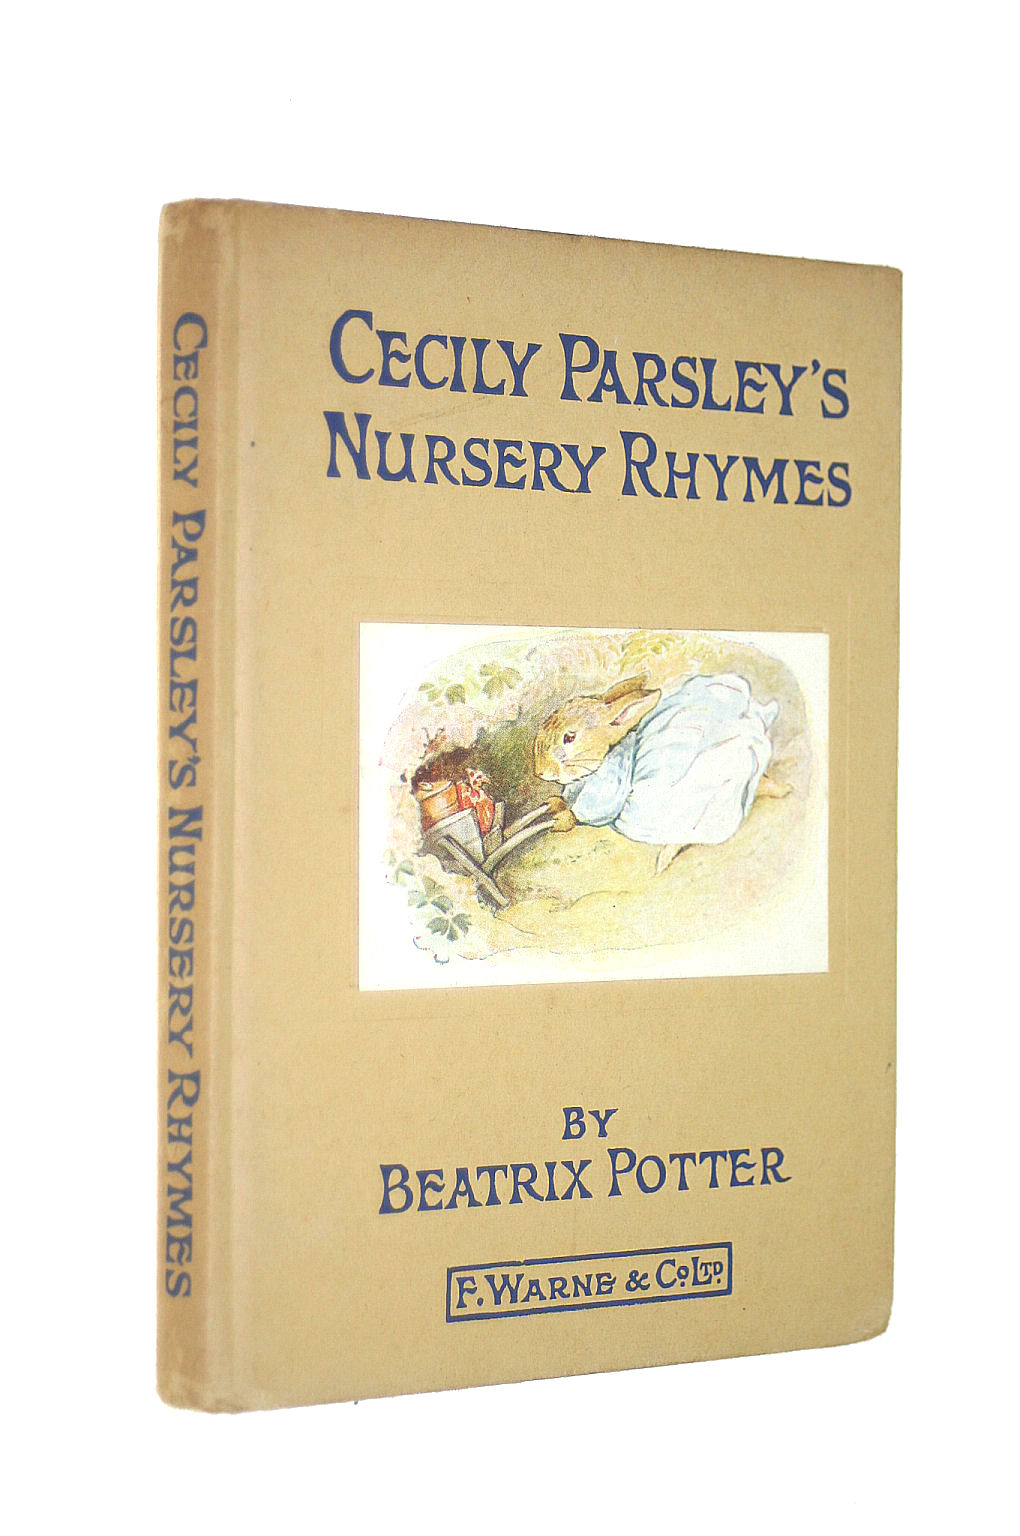 Image for Cecily Parsley'S Nursery Rhymes